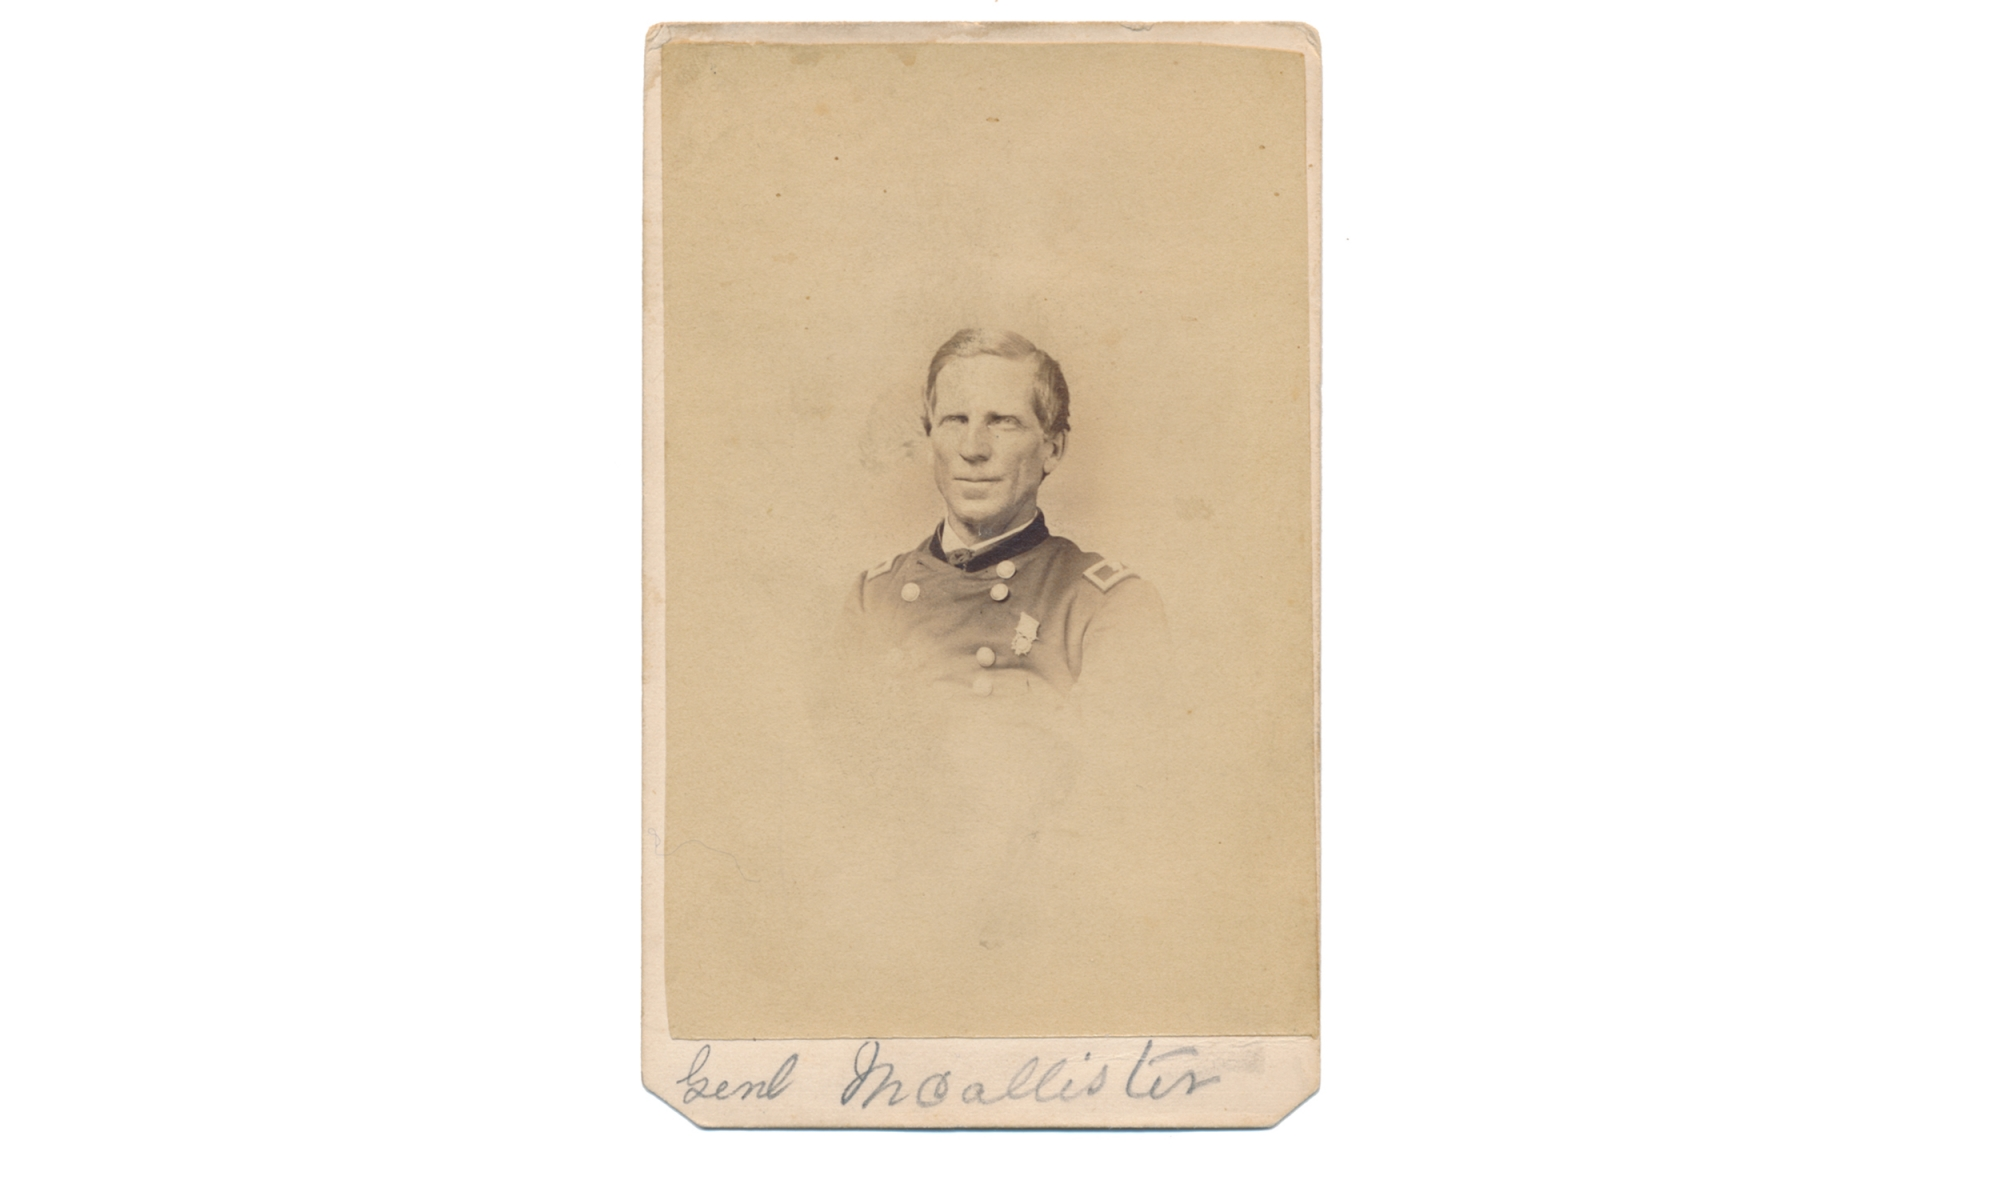 CDV OF GENERAL ROBERT McALLISTER